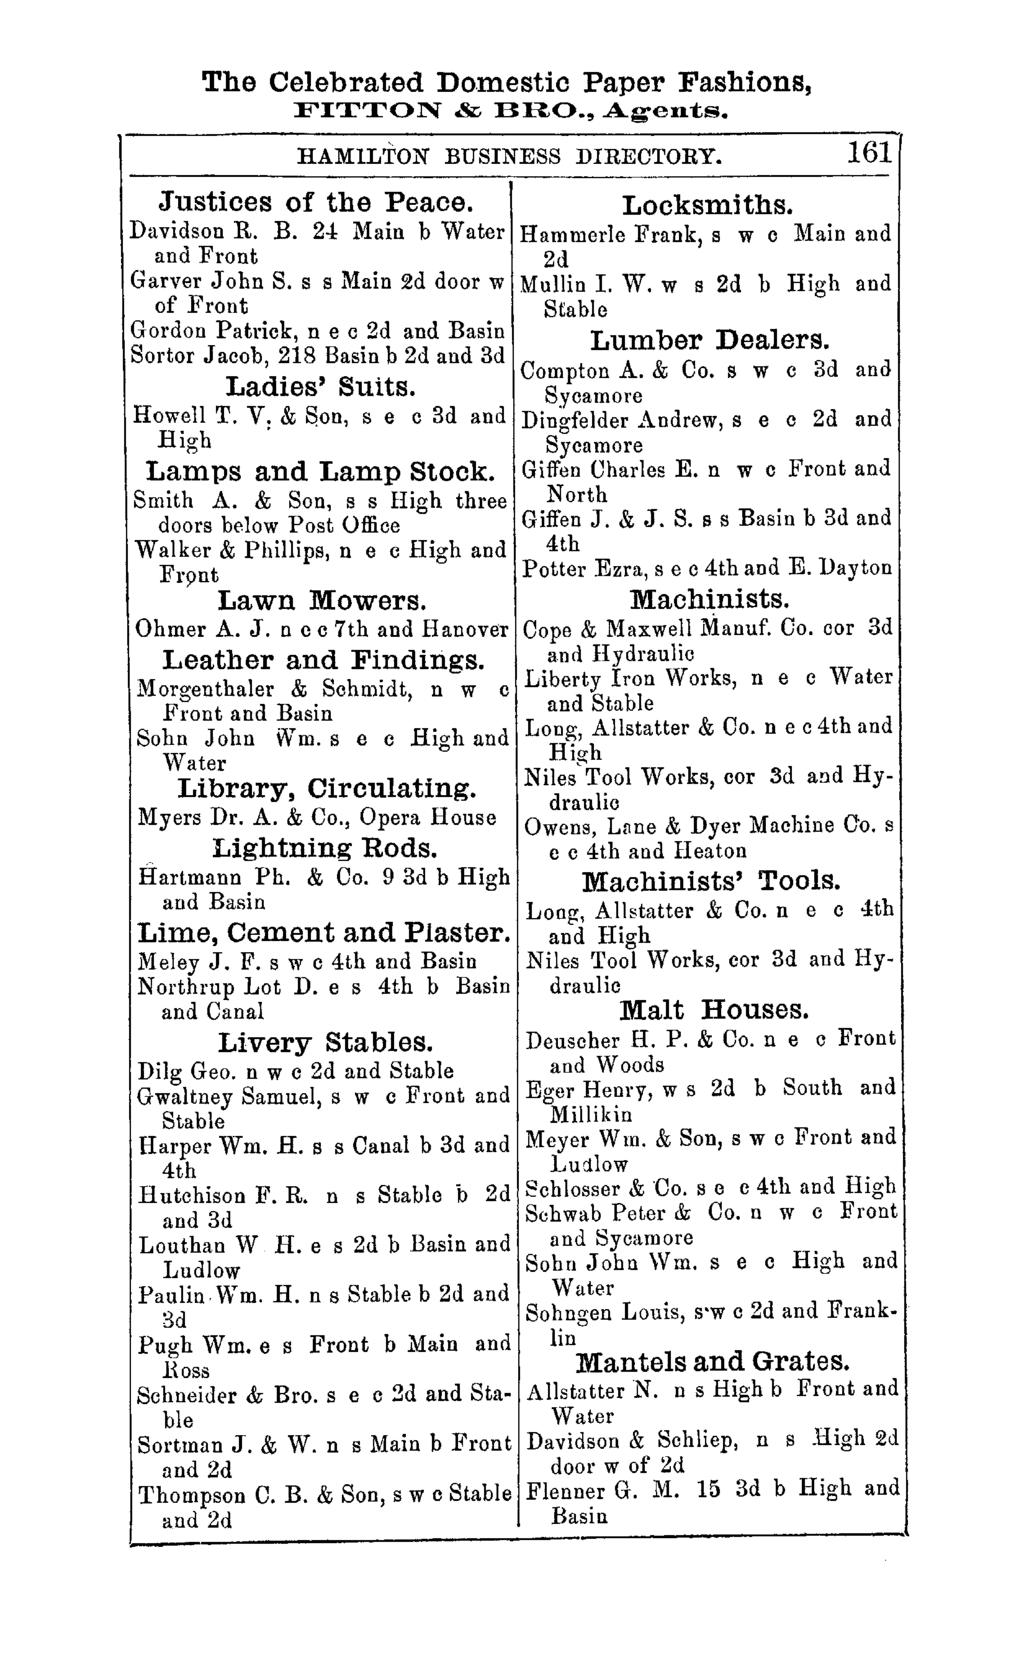 "The Celebrated Do.mestic Paper Fashions, FITTON & BRO., Agen""ts. HAMILTON BUSINESS DIRECTORY. 161 Justices of the Peace. Davidson R. B. 24 Main b Water and Front Garver John S."